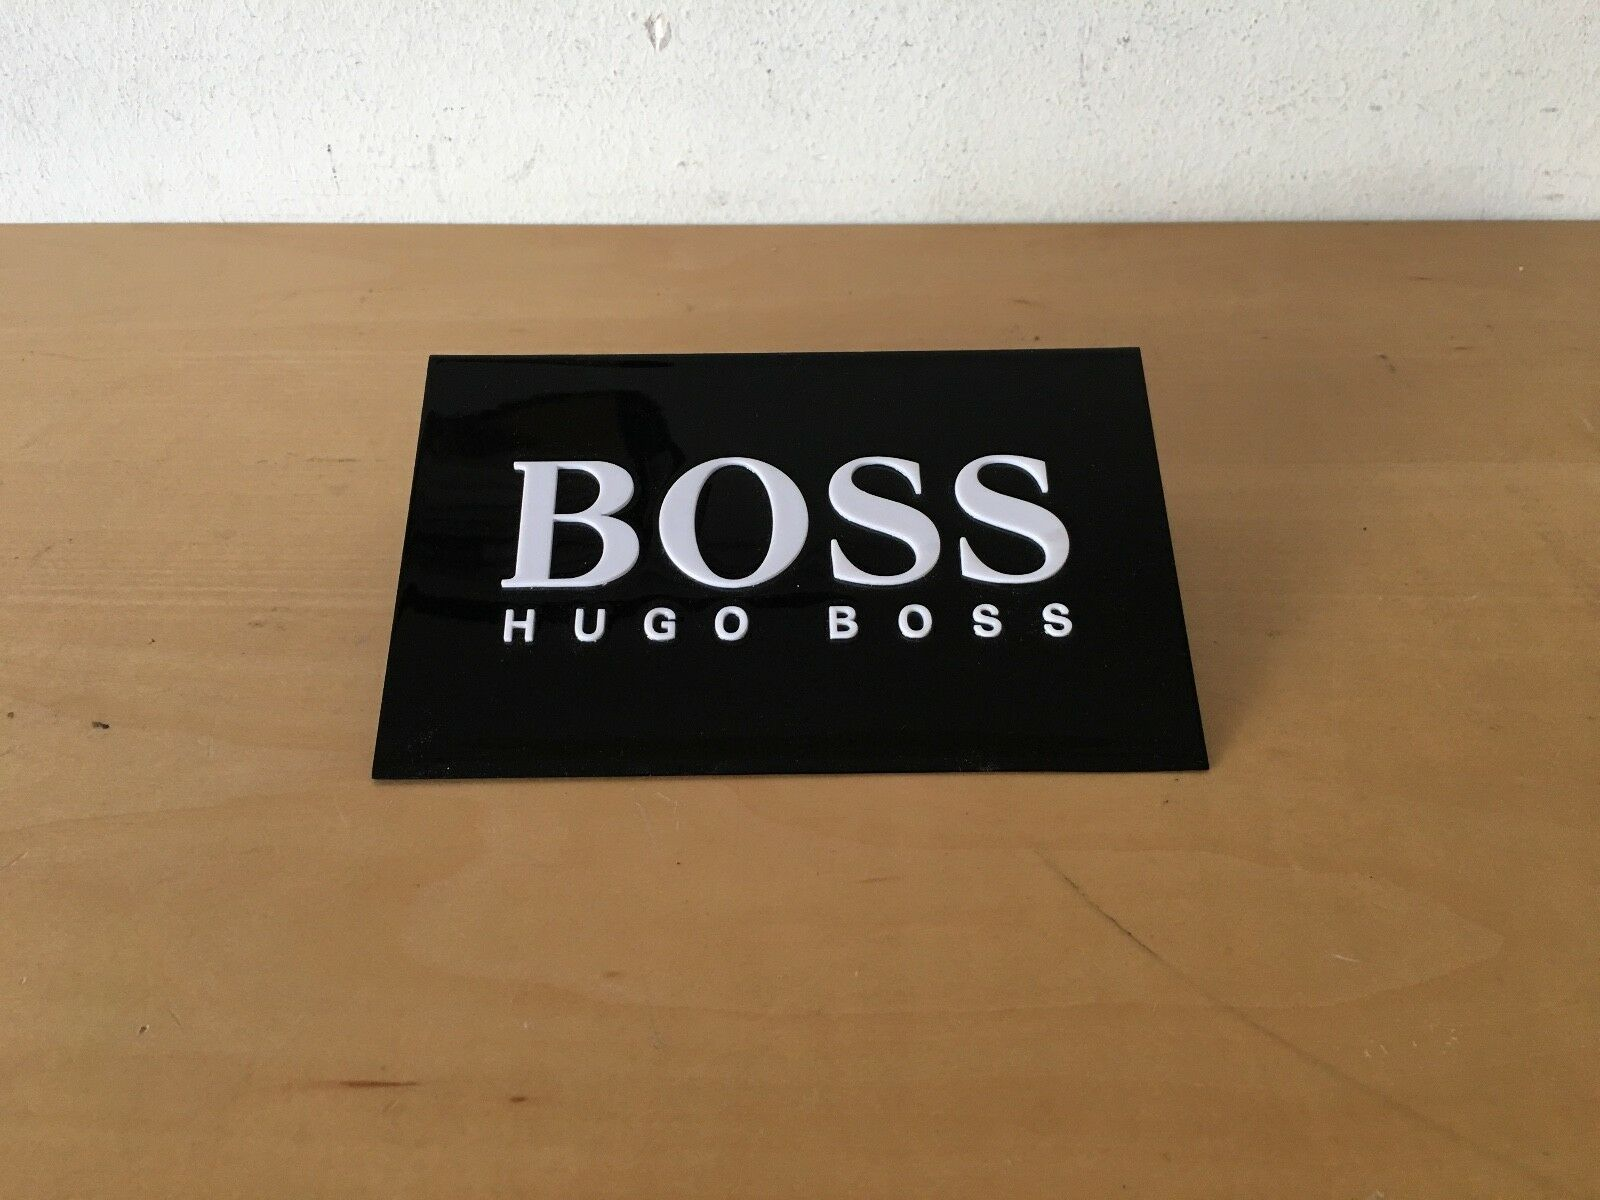 Used - Placa Exposant Plaque HUGO BOSS - - - Watches Relojes - 16 5 x 9 5 x 4 cm f1bfc1